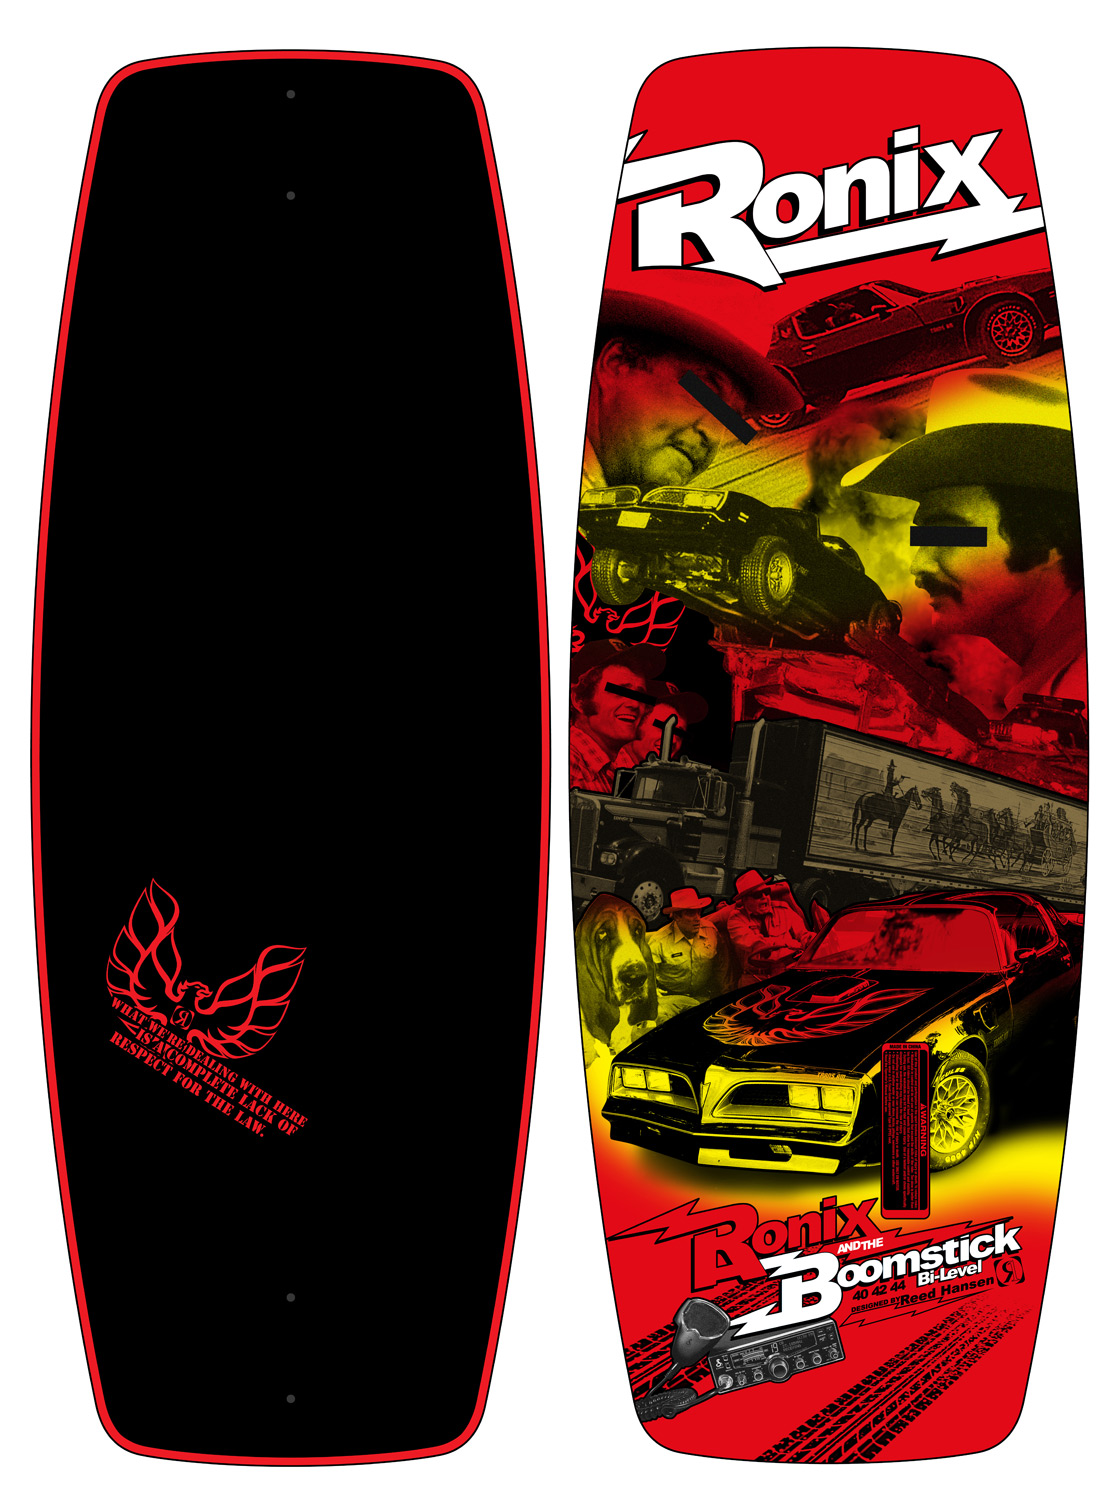 "Wake The day we are writing this copy is the day Reed Hansen won his 5th WWA Wakeskate World title riding his own variation of the heavyweight guardian bi-level deck. This past season, Reed and our skate team, responsible for the original compression molded wakeskate, sourced some new lively materials to throw in a 14 lb. stockier skate, offering more board control on the water and leaving it. The Boomstick is comprised of an all new solid, snappy, skatey, eco-friendly, super saucy wood with a smoothed out concave making it easier to always land on the bolts. A bi-level shape creates a more consistent, quicker swing weight than a traditional single level skate, yet still has the stability for somebody just taking the drop. Reed has been riding a variation of this shape all the way to winning the coveted titles of Wakeboarding and Alliance Magazine's rider of the year. From Georgia to Texas and back in 28 hours flat - this is my Boomstick! ""S marks top of the line""Key Features of the Ronix Boomstick Bi Level Wakeskate: Concave - starts in the center of the board and then tapers to the ends for a more controllable flip Hybrid Rocker - isn't too explosive, or inconsistent off the wake, instead you'll get more glide speed from this arc Compression Molding - the most durable wood skate out there The poppiest wood we have ever tested 2- .8"" wakeskate specific fins Reed Hansen designed and endorsed - $279.95"